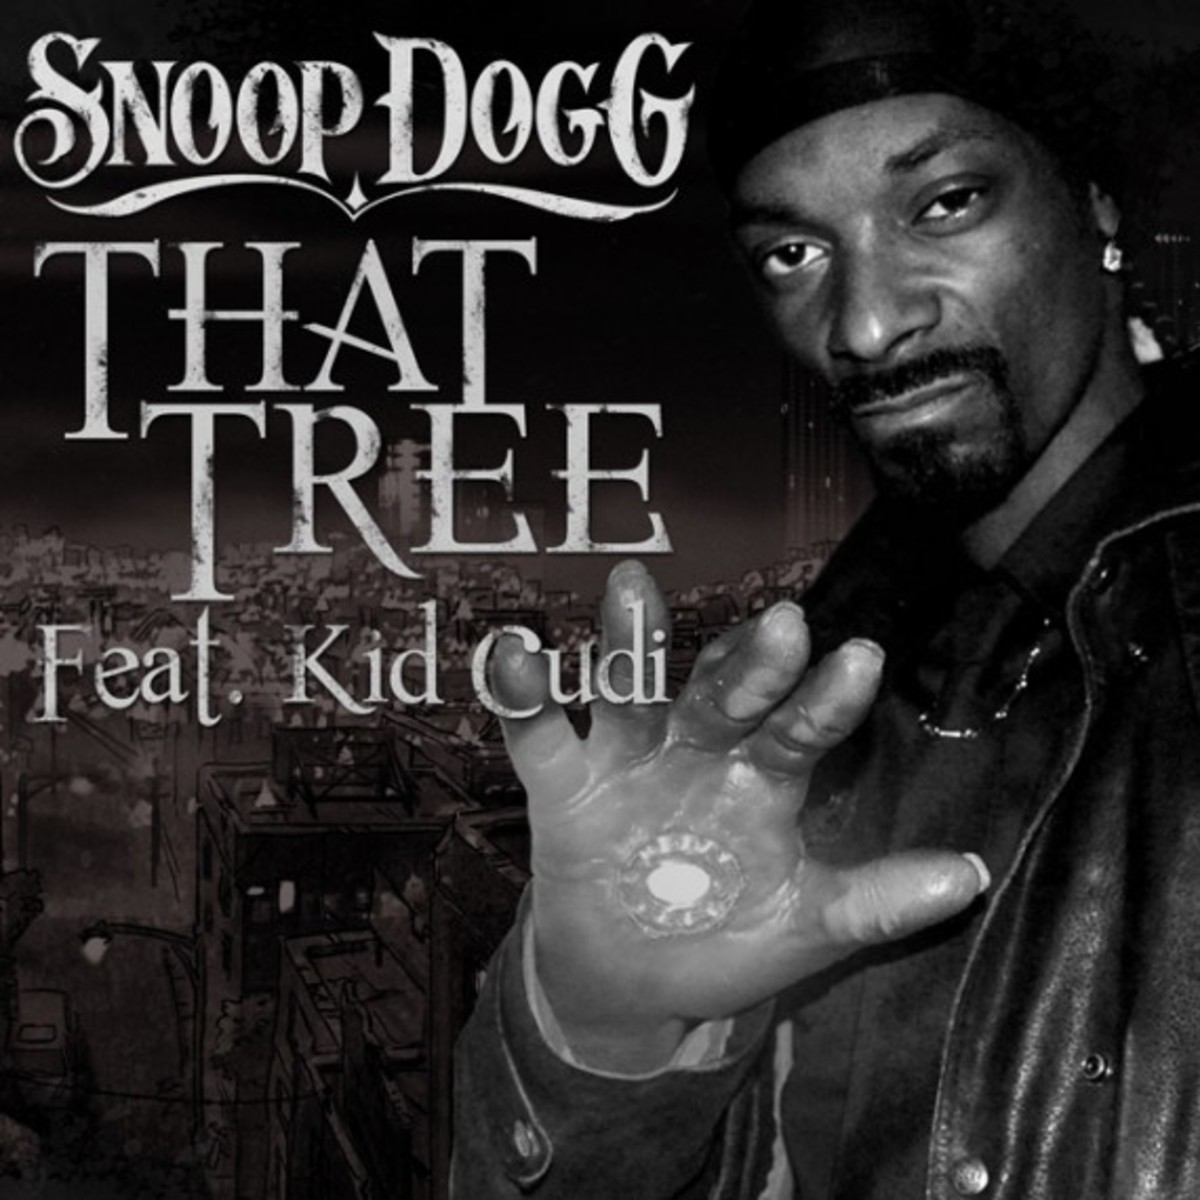 snoop-dogg-featuring-kid-cudi-that-tree-1